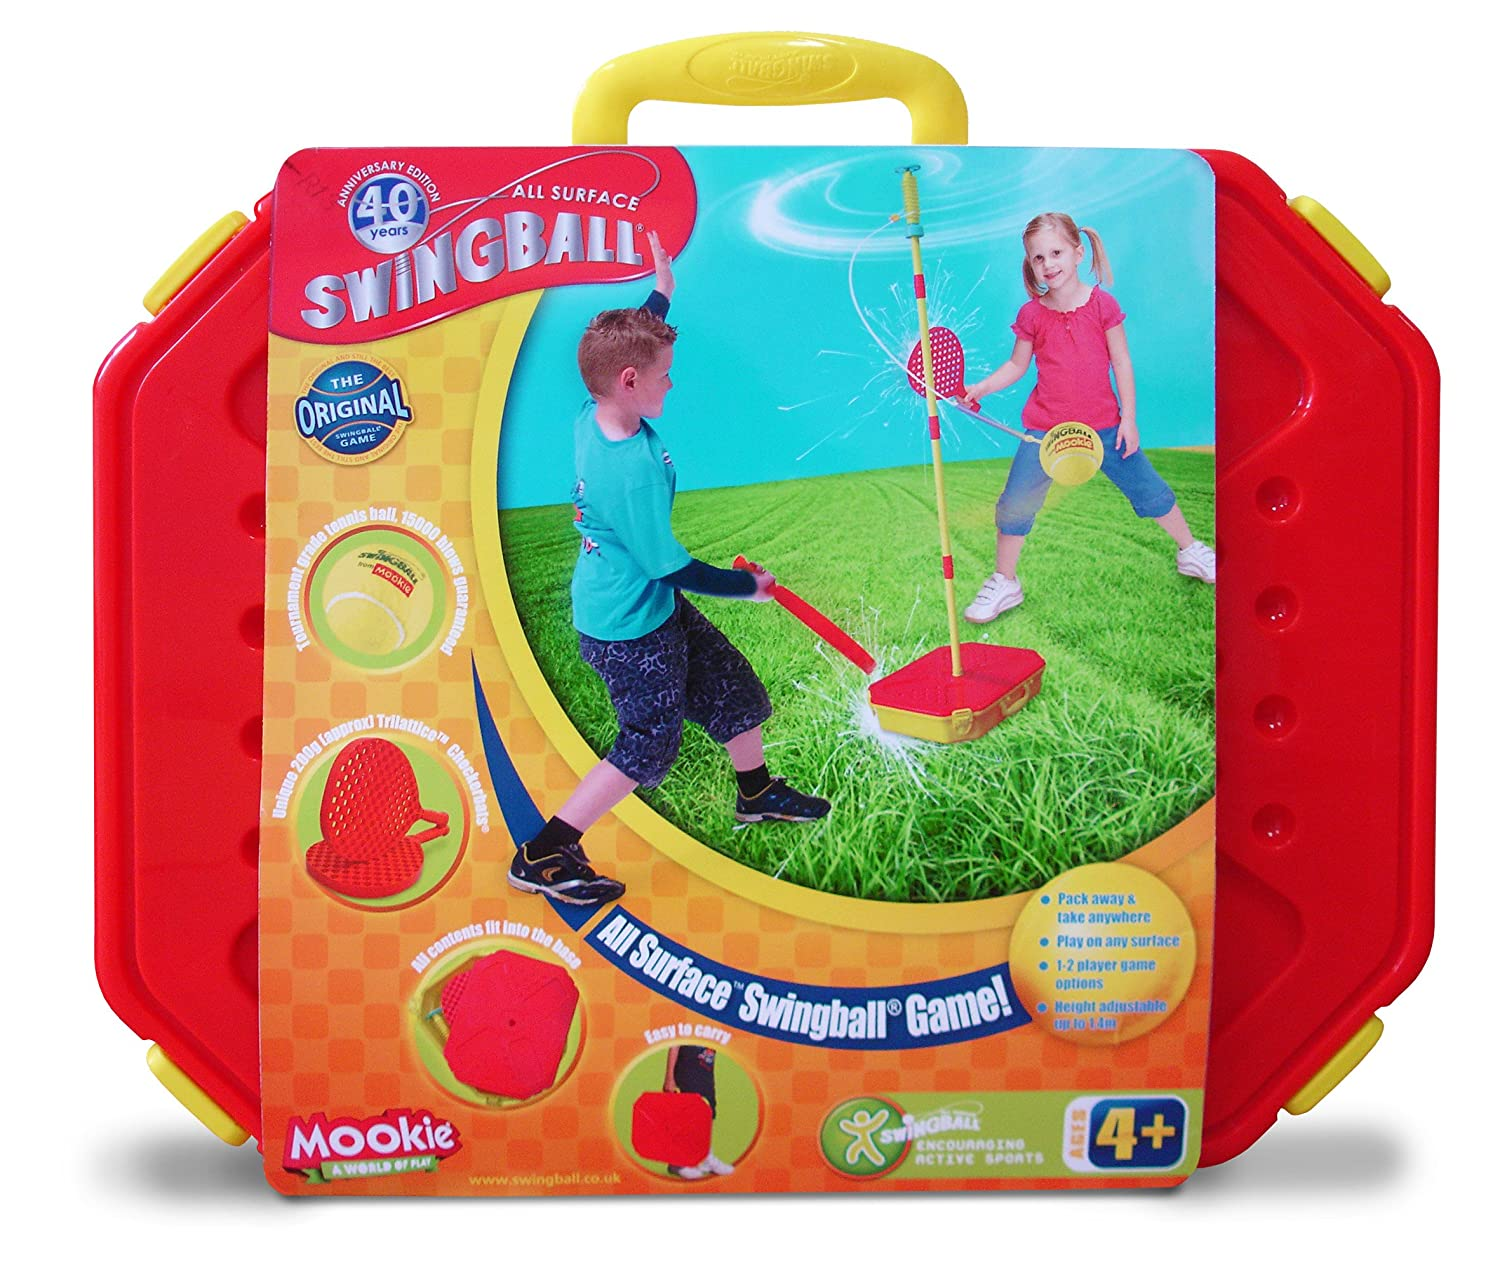 Mookie Classic Swingball Tetherball Set - Portable Tetherball MK7215